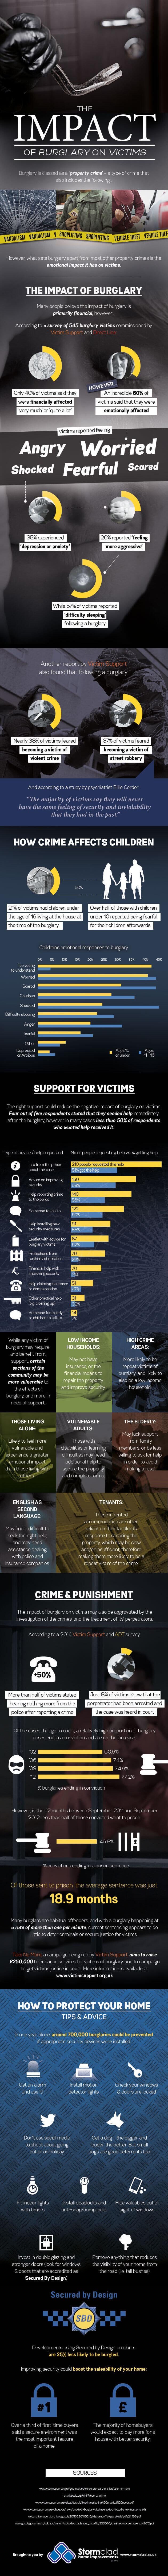 A leaflet on The Impact of Burglary On Victims.